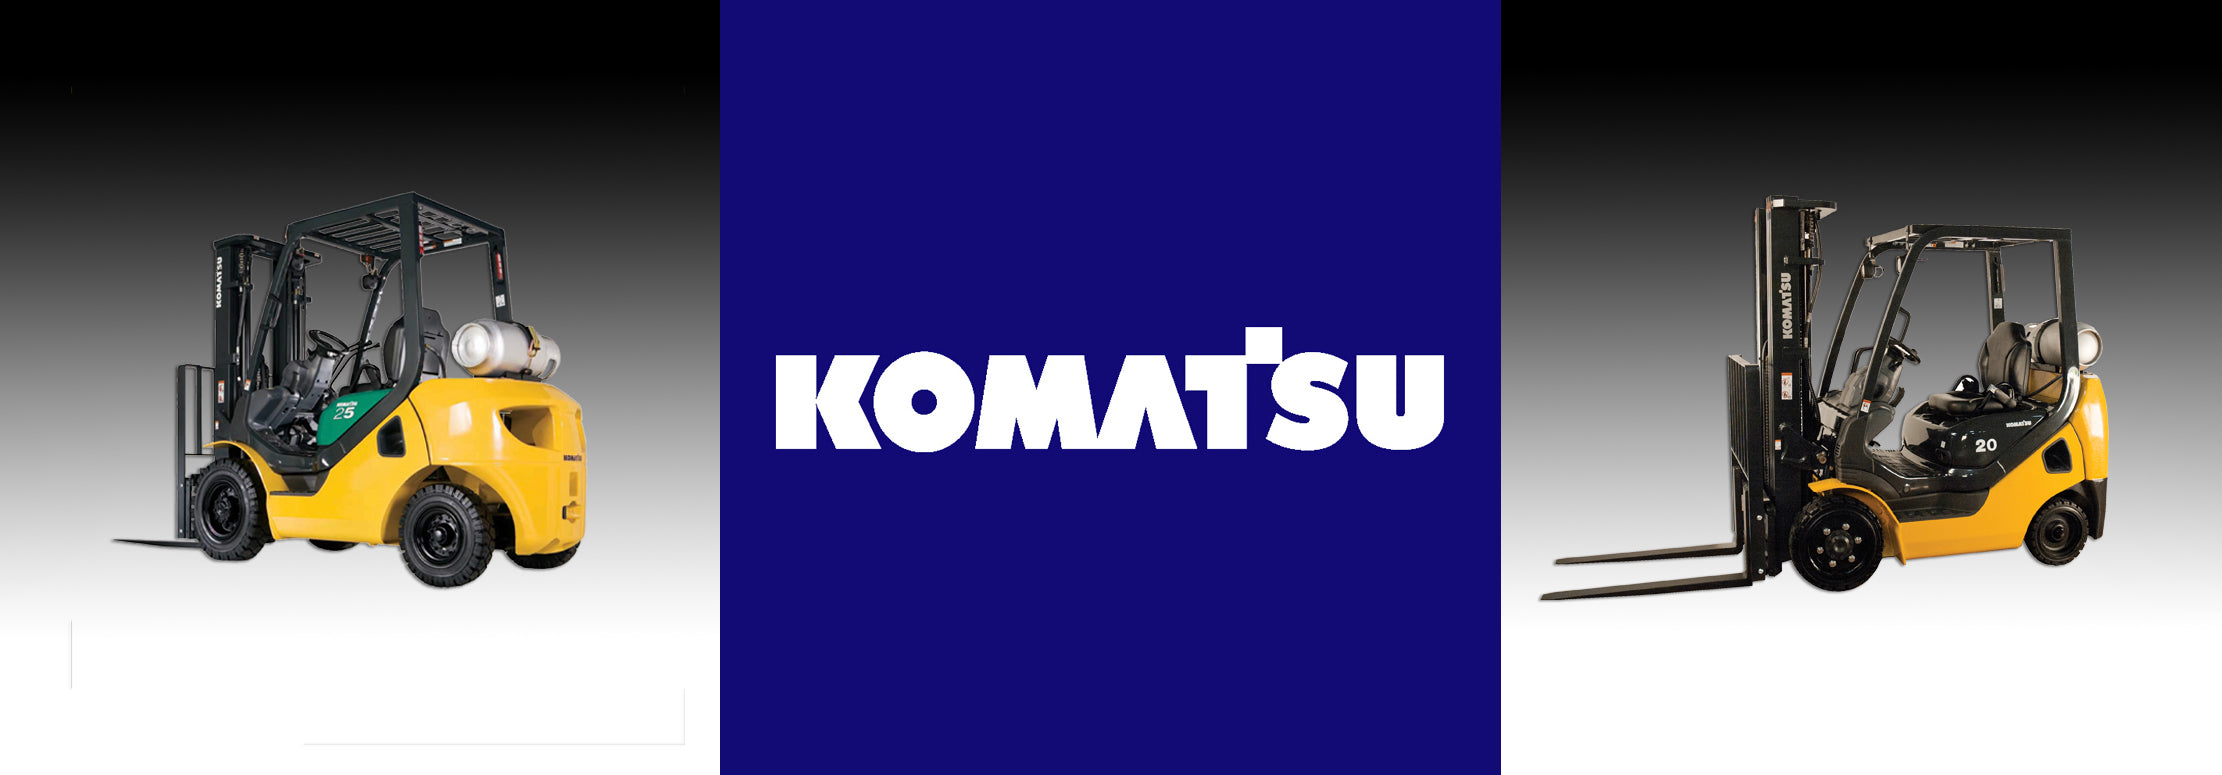 Komatsu equipment tire covers tire socks tire boots drip protection drip diapers surface protection